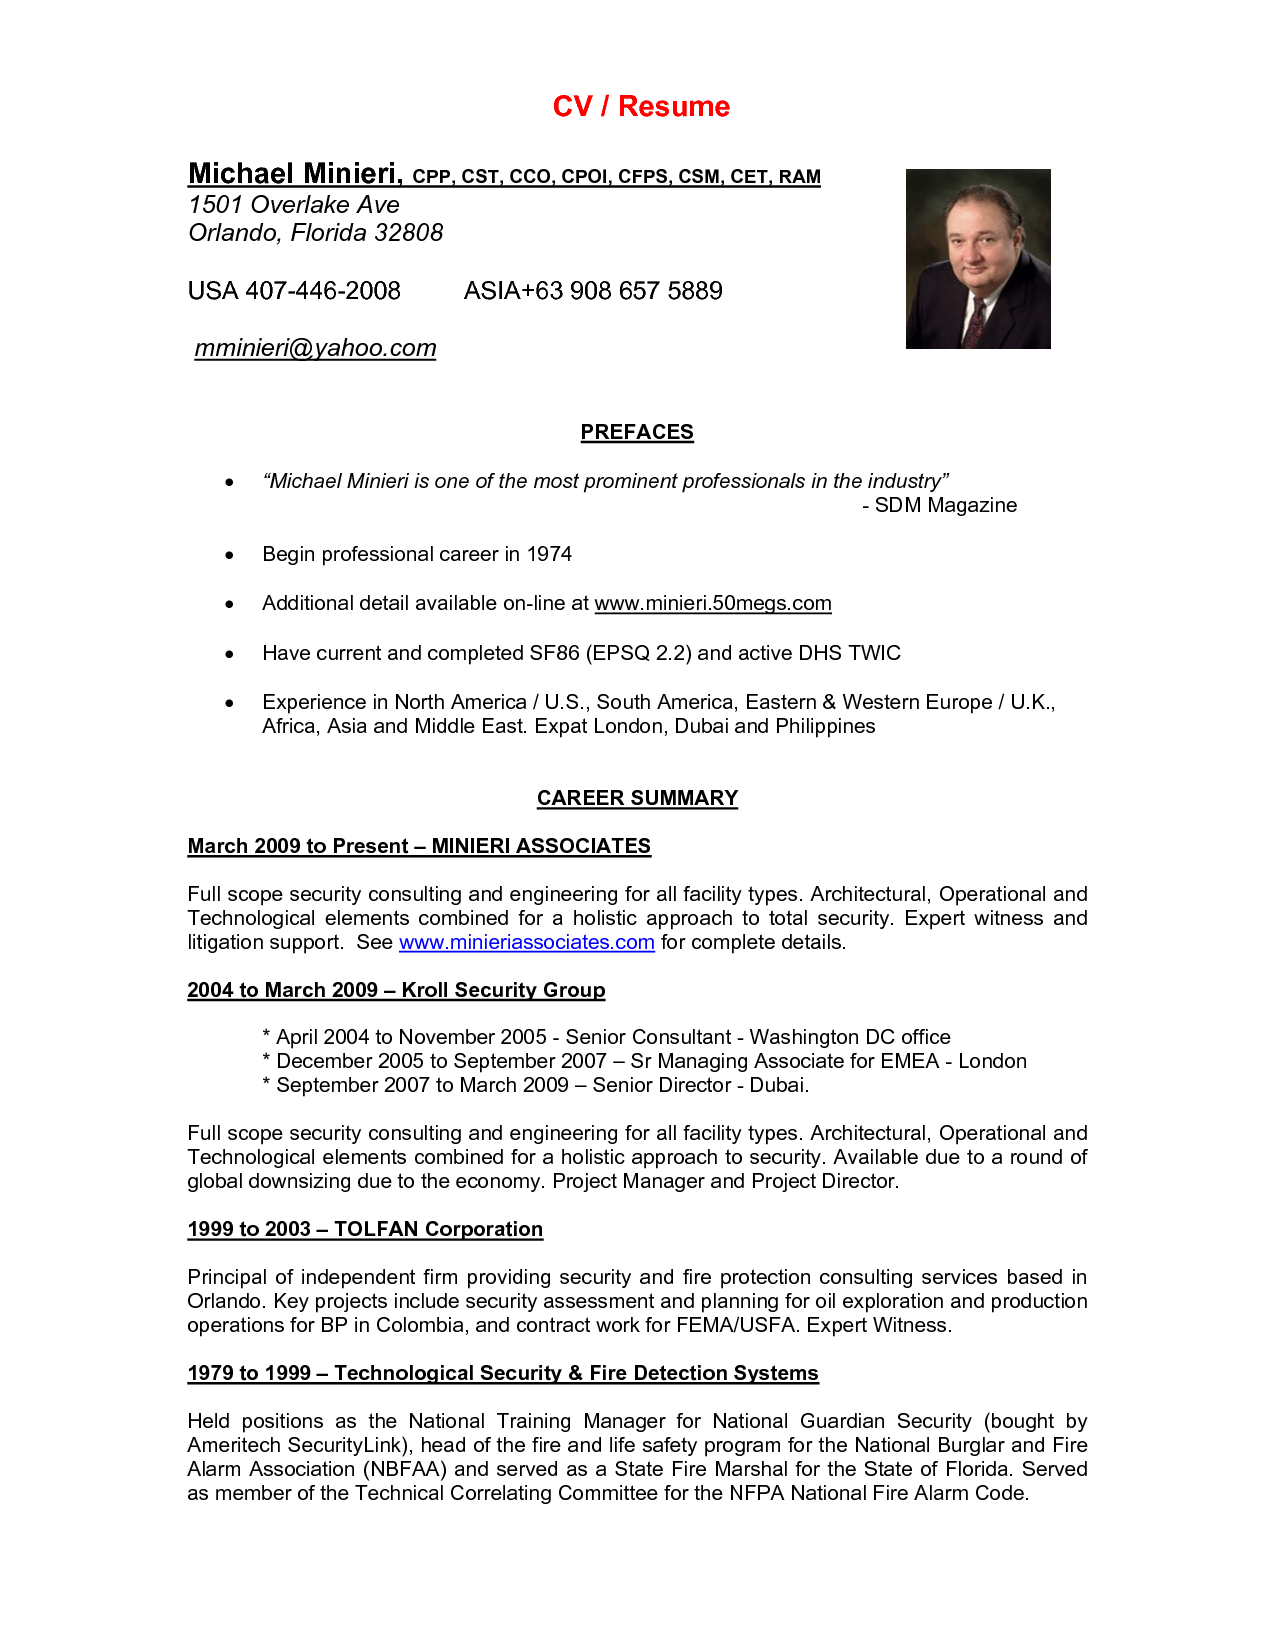 download sample resumes curriculum vitae cv and cover letter for ...